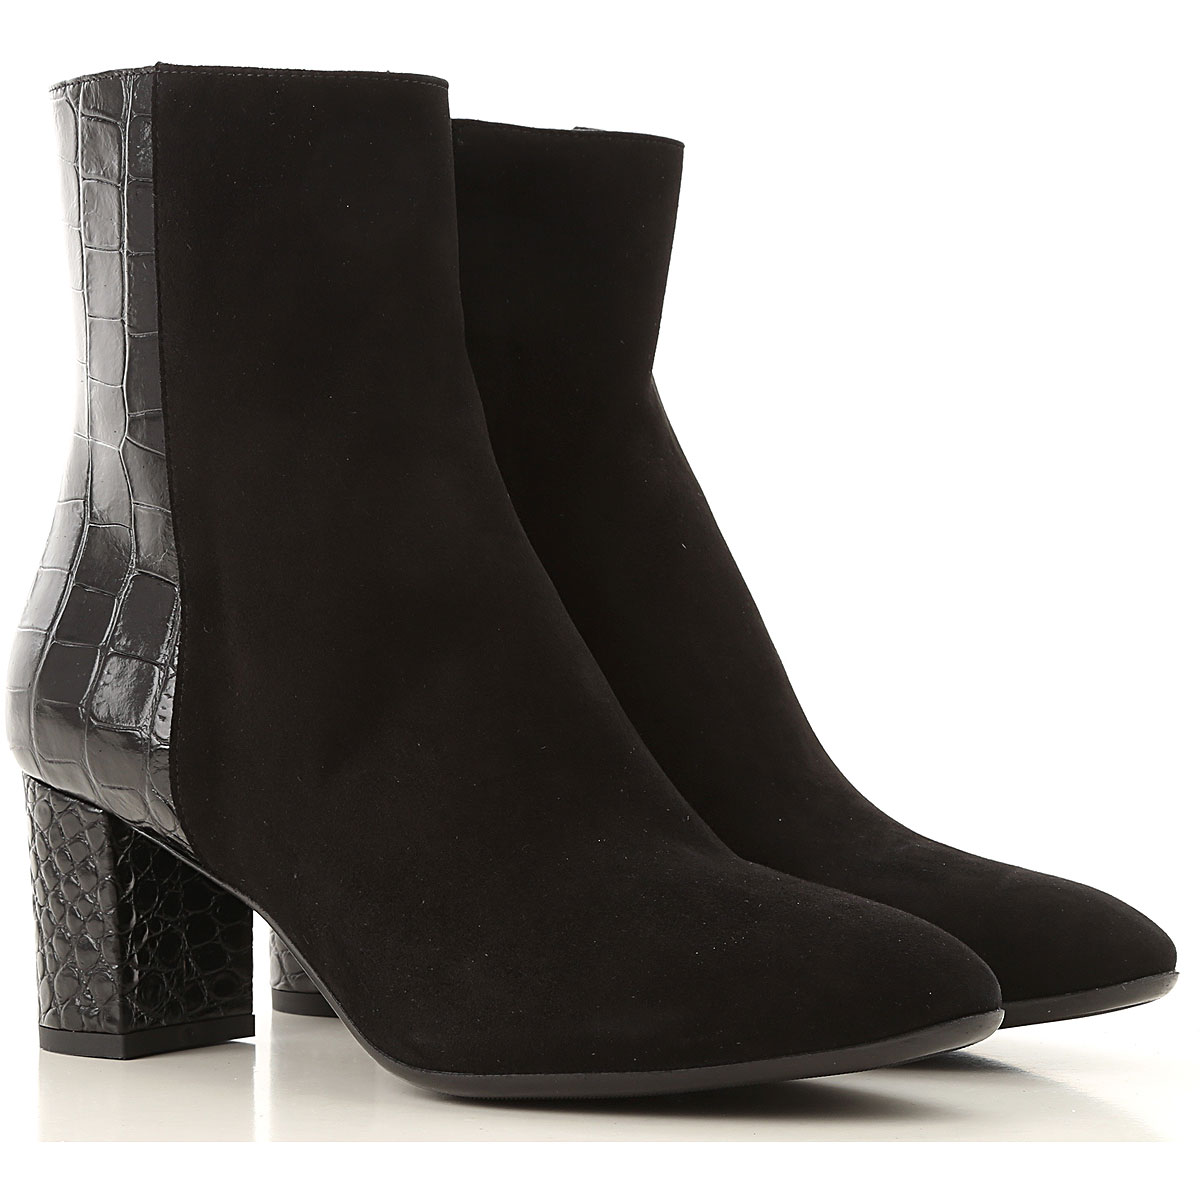 Guglielmo Rotta Boots for Women, Booties On Sale, Black, Leather, 2019, 7 8 9